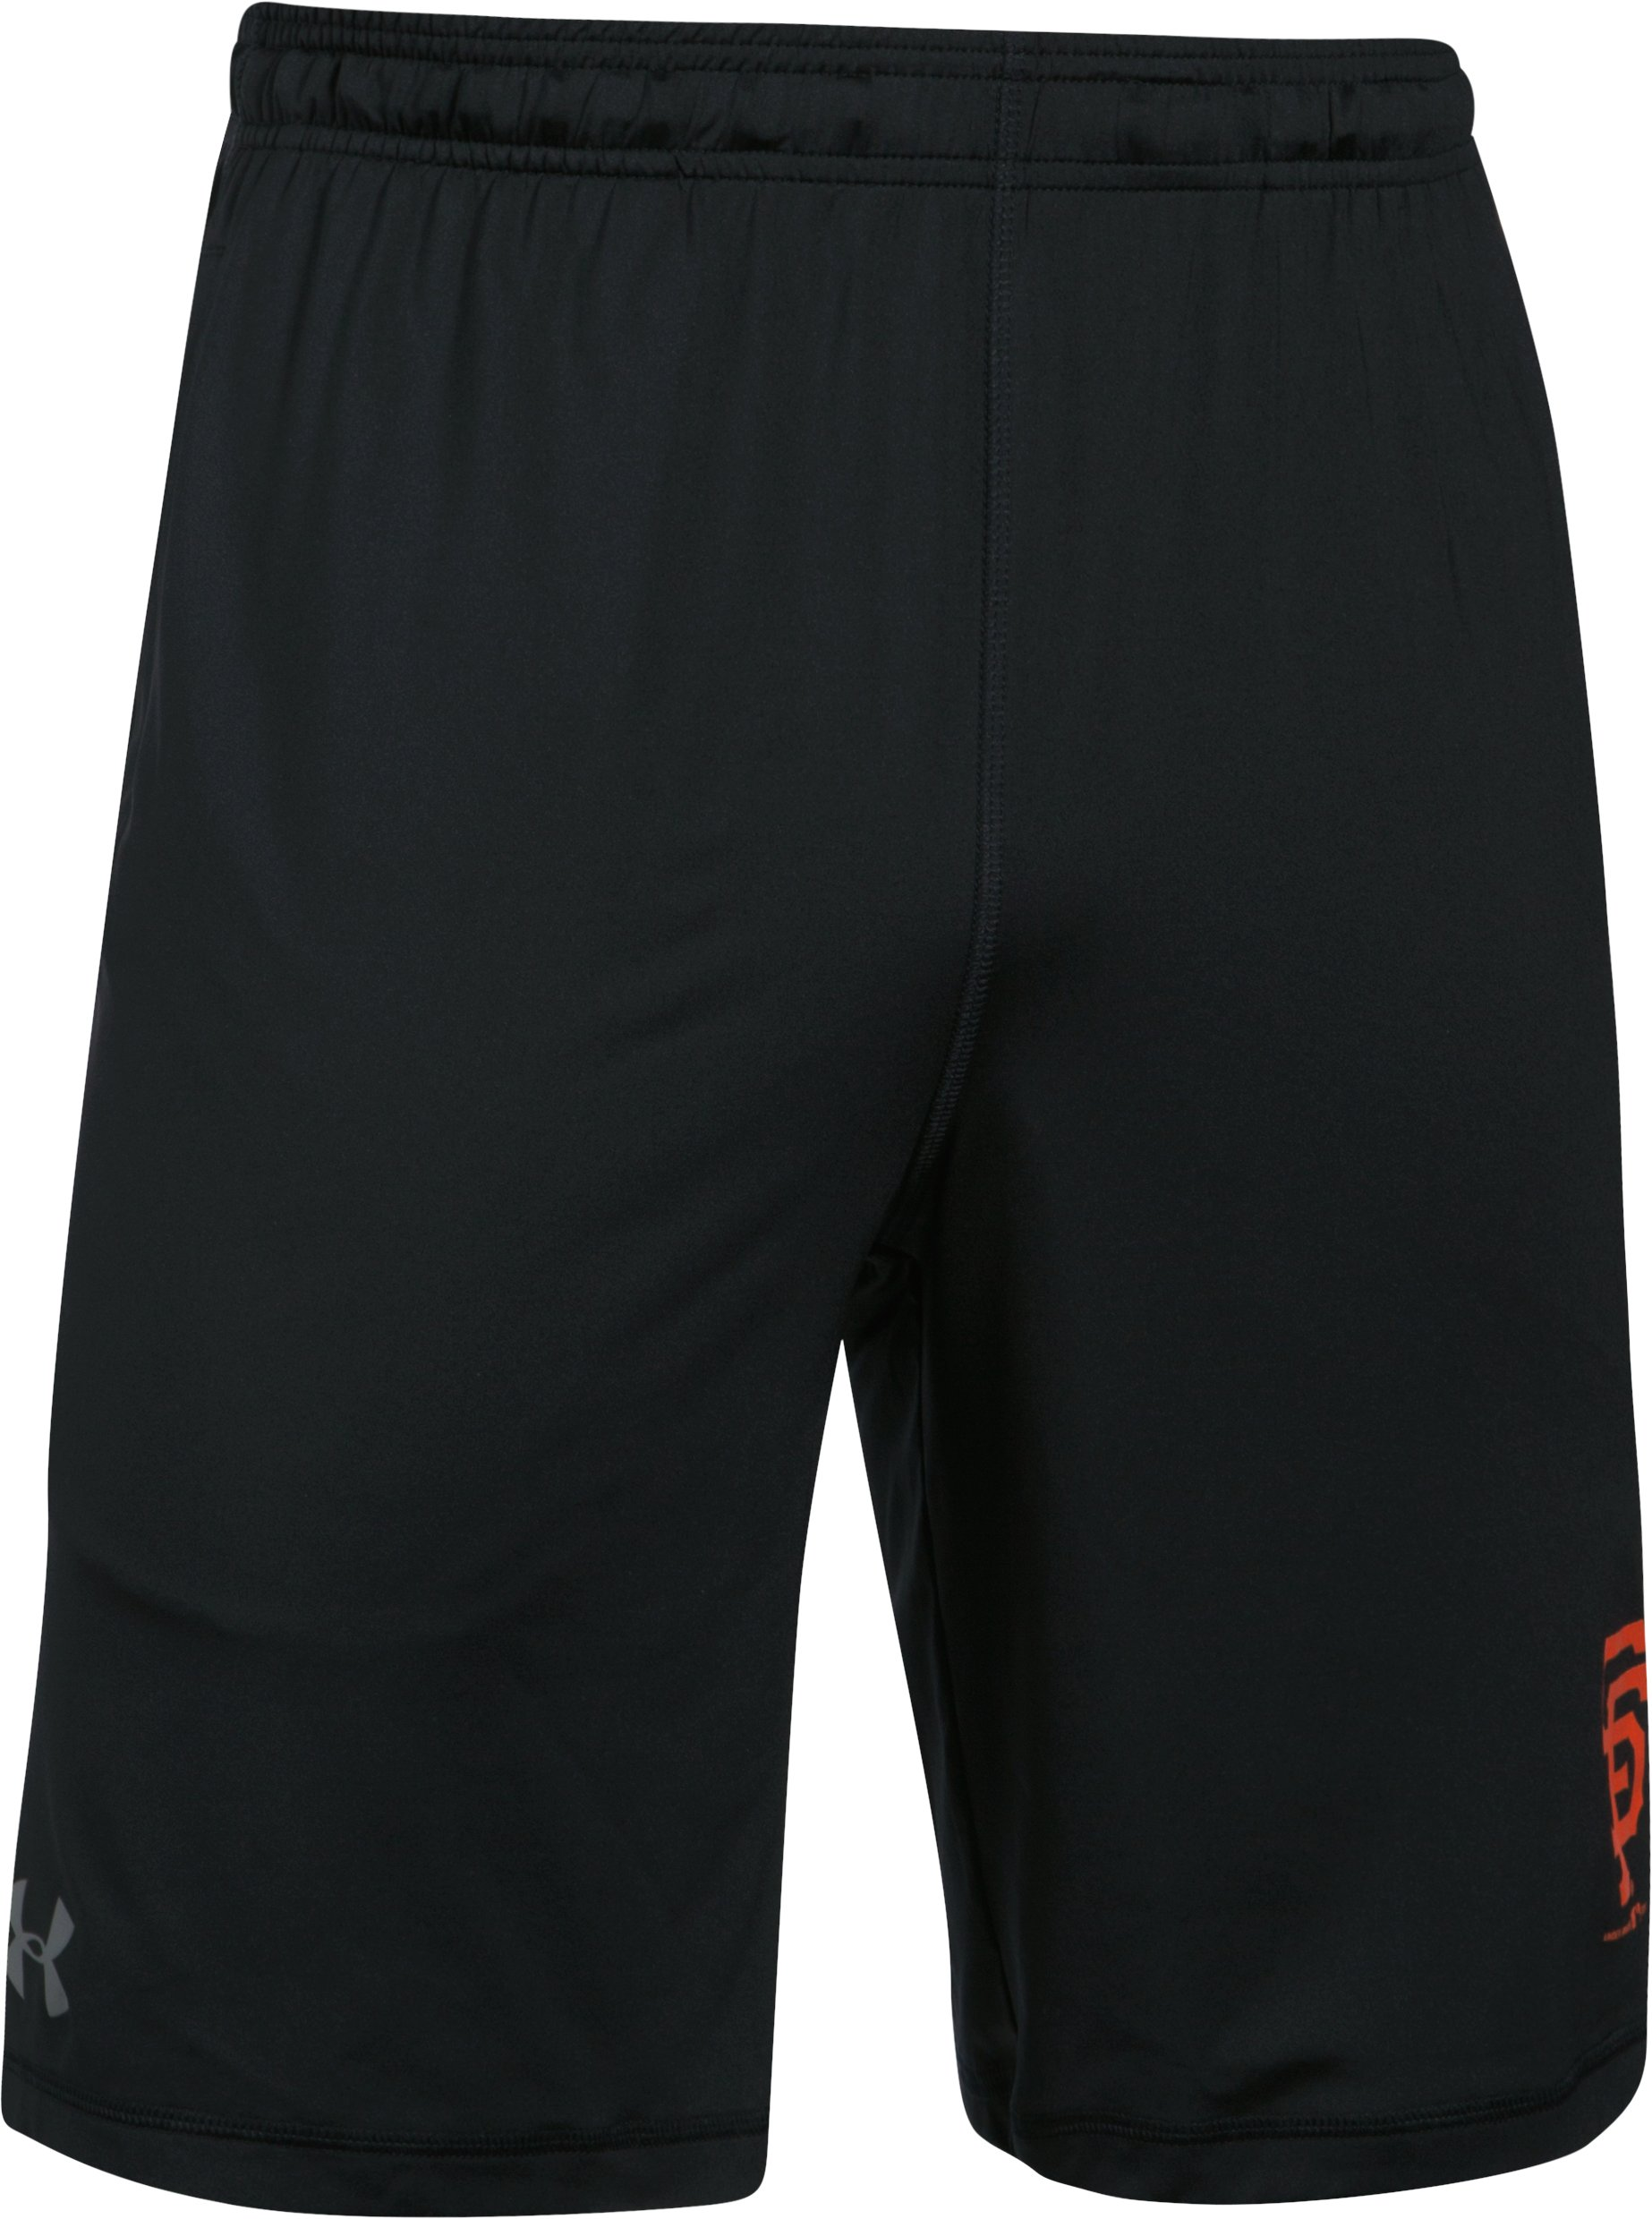 Men's San Francisco Giants UA Raid Shorts, Black ,